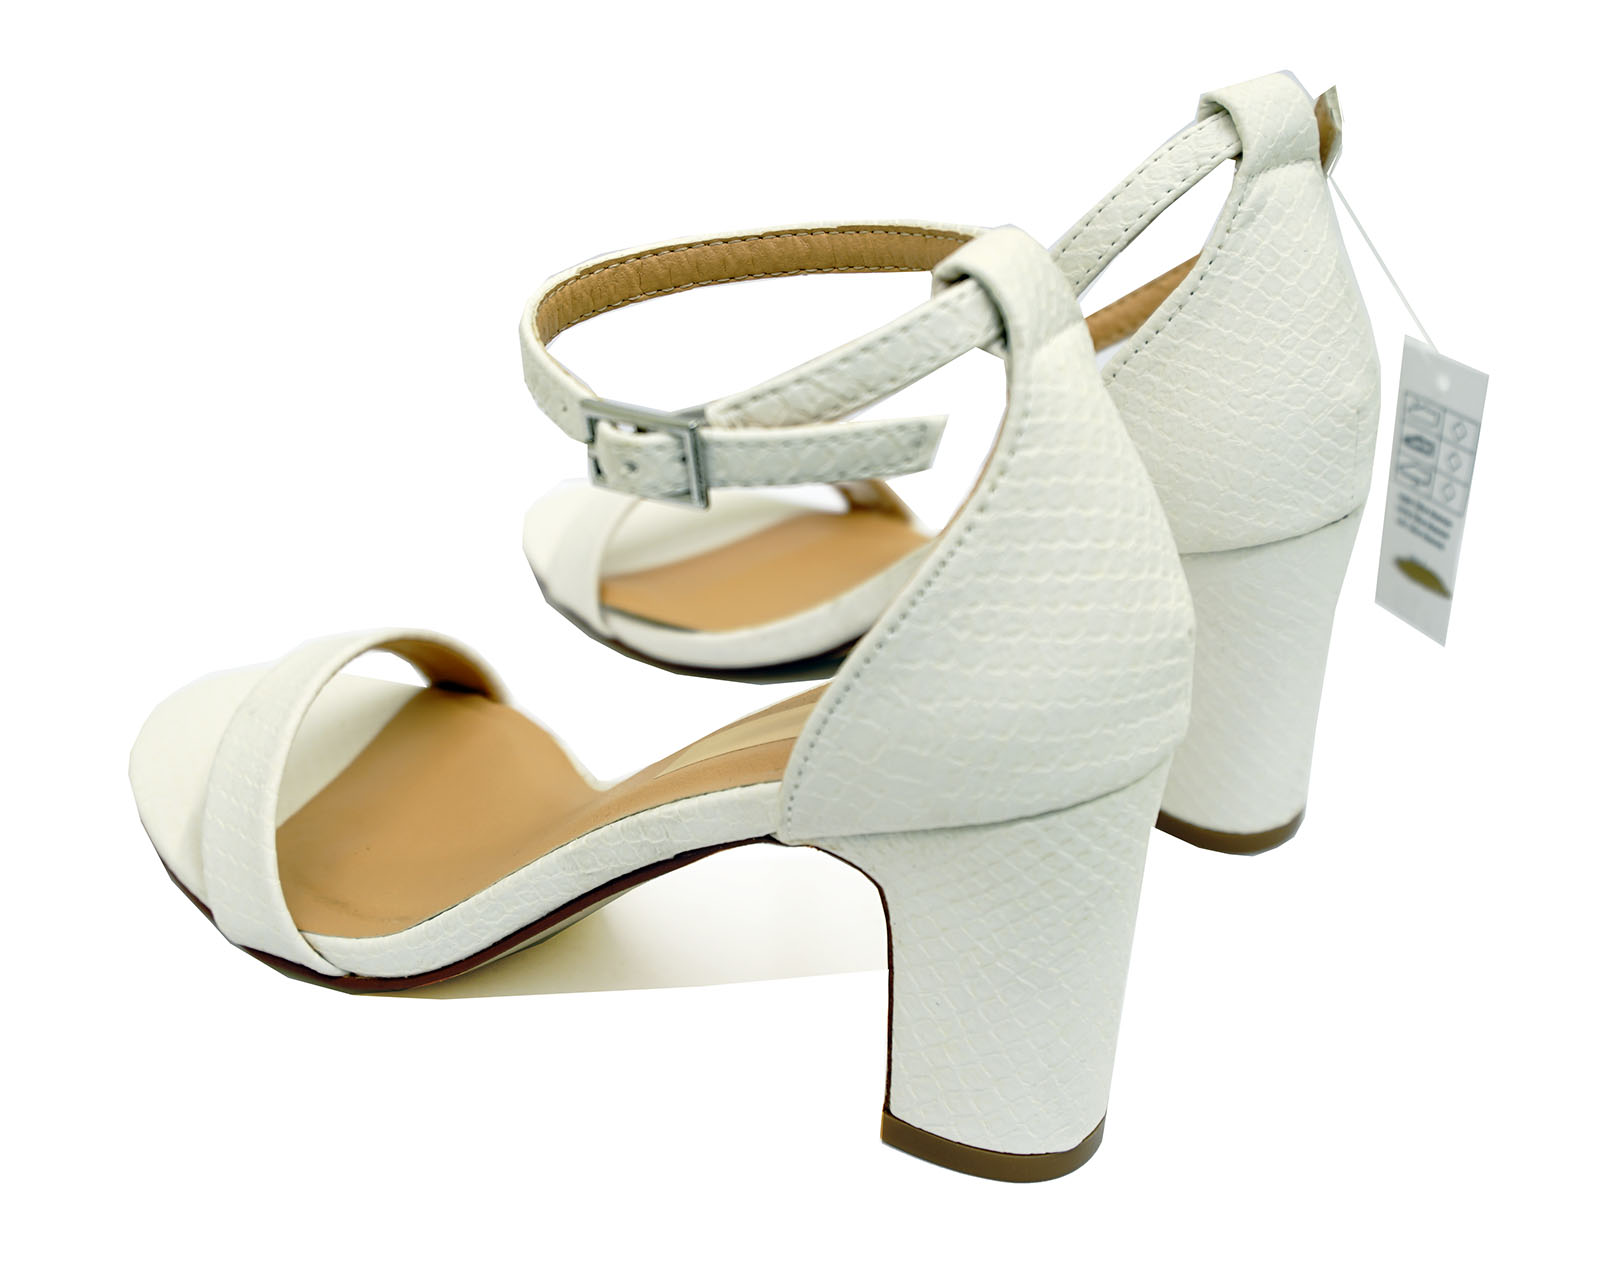 LADIES-WHITE-ANKLE-STRAP-BLOCK-HEEL-PEEPTOE-SANDALS-HOLIDAY-COMFY-SHOES-UK-3-8 thumbnail 16